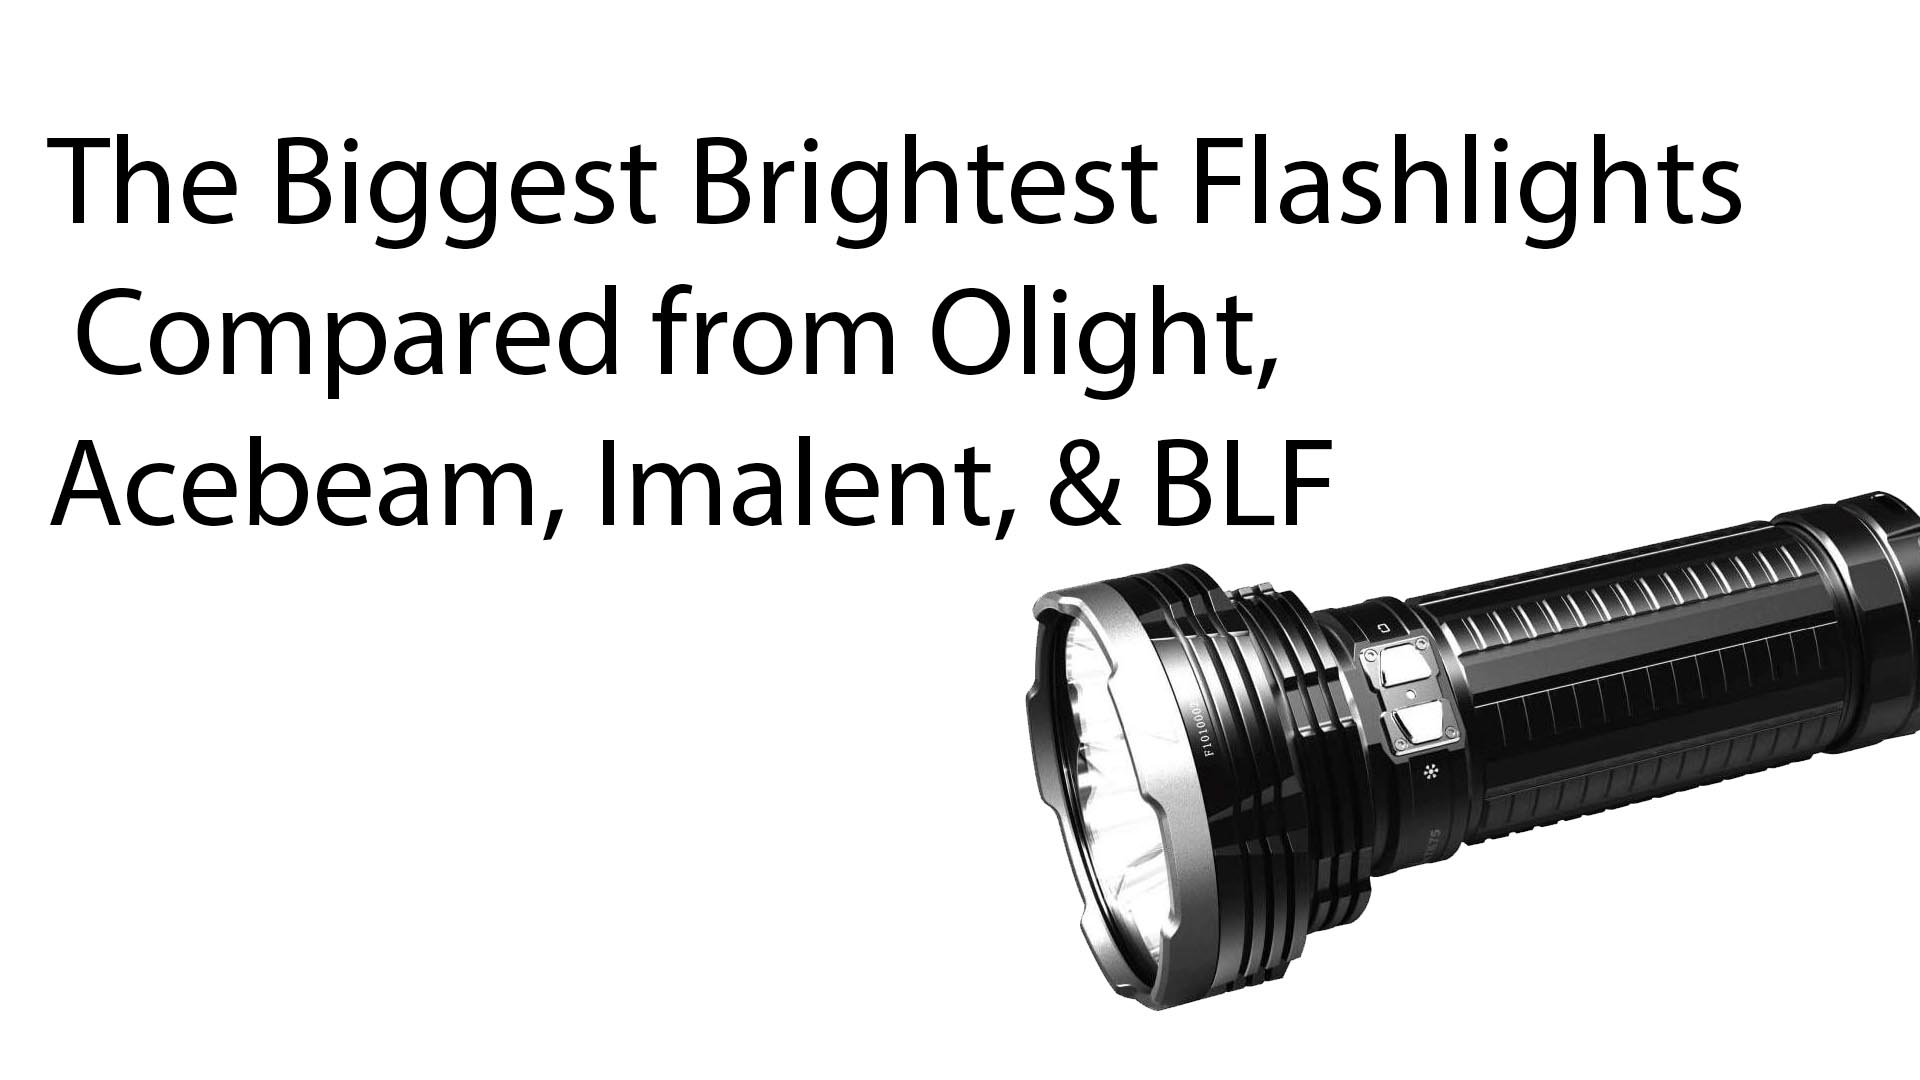 The Biggest Brightest Flashlights Compared from Olight Acebeam Imalent BLF - The Biggest Brightest Flashlights Compared from Olight, Acebeam, Imalent, & BLF